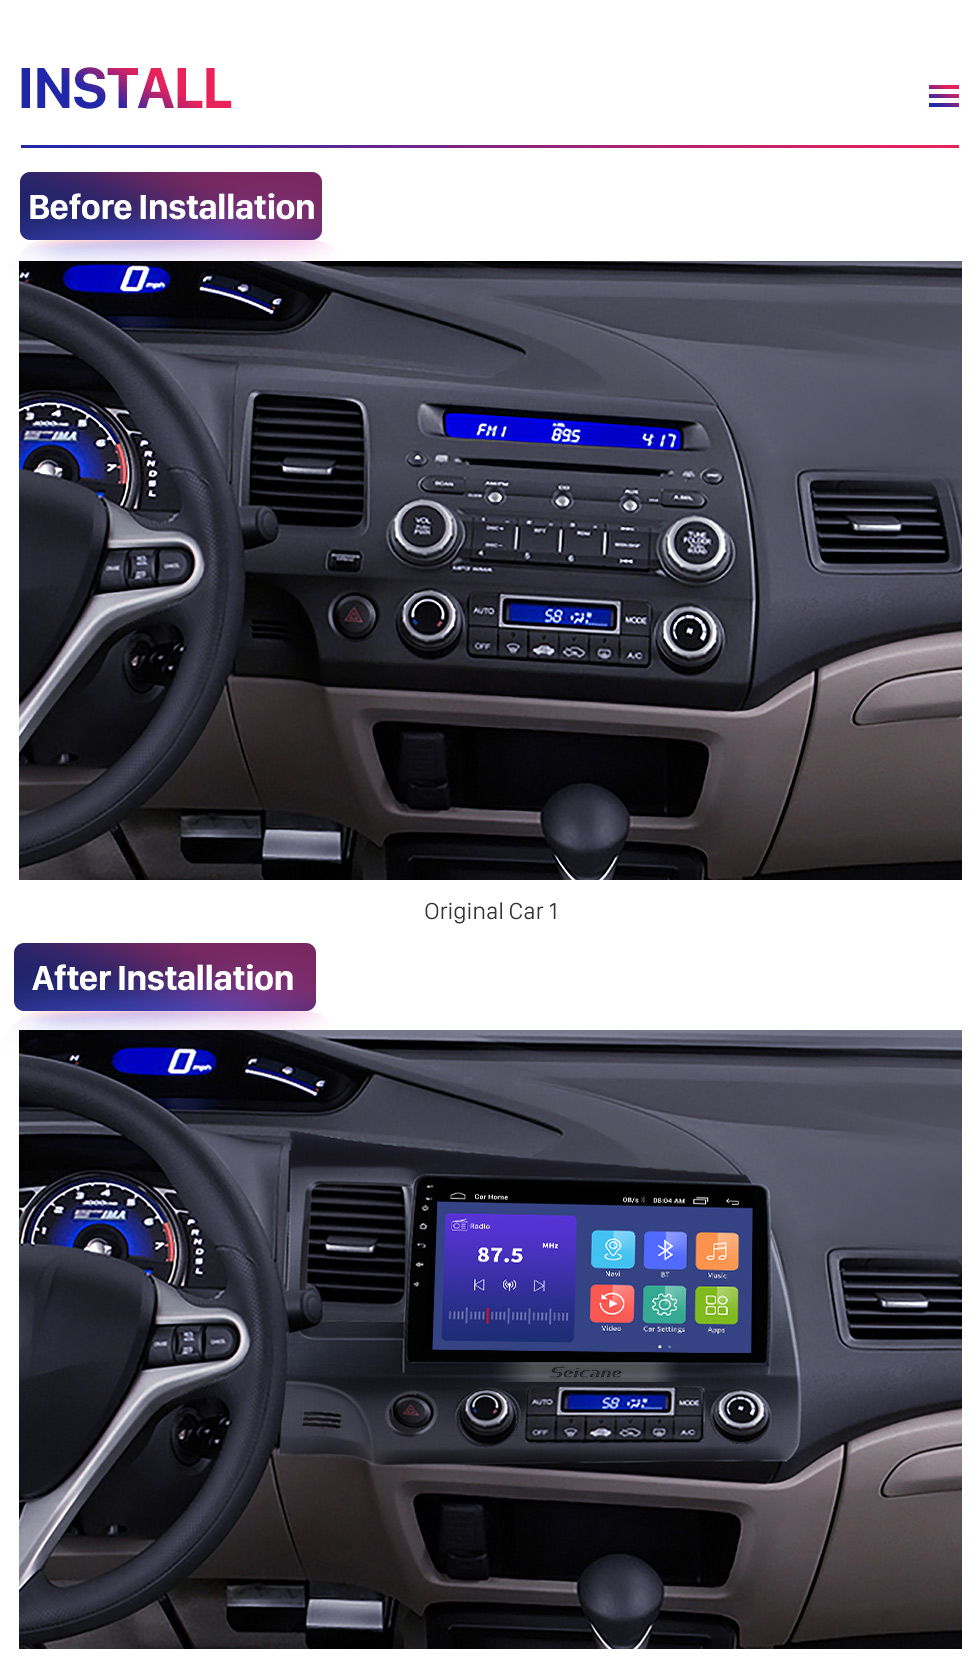 Seicane 9 inch 1024*600 HD Touch Screen Android 9.0 GPS Navigation Radio for 2006-2011 Honda Civic(LHD) with Bluetooth WIFI OBD2 USB Audio Aux 1080P Rearview Camera